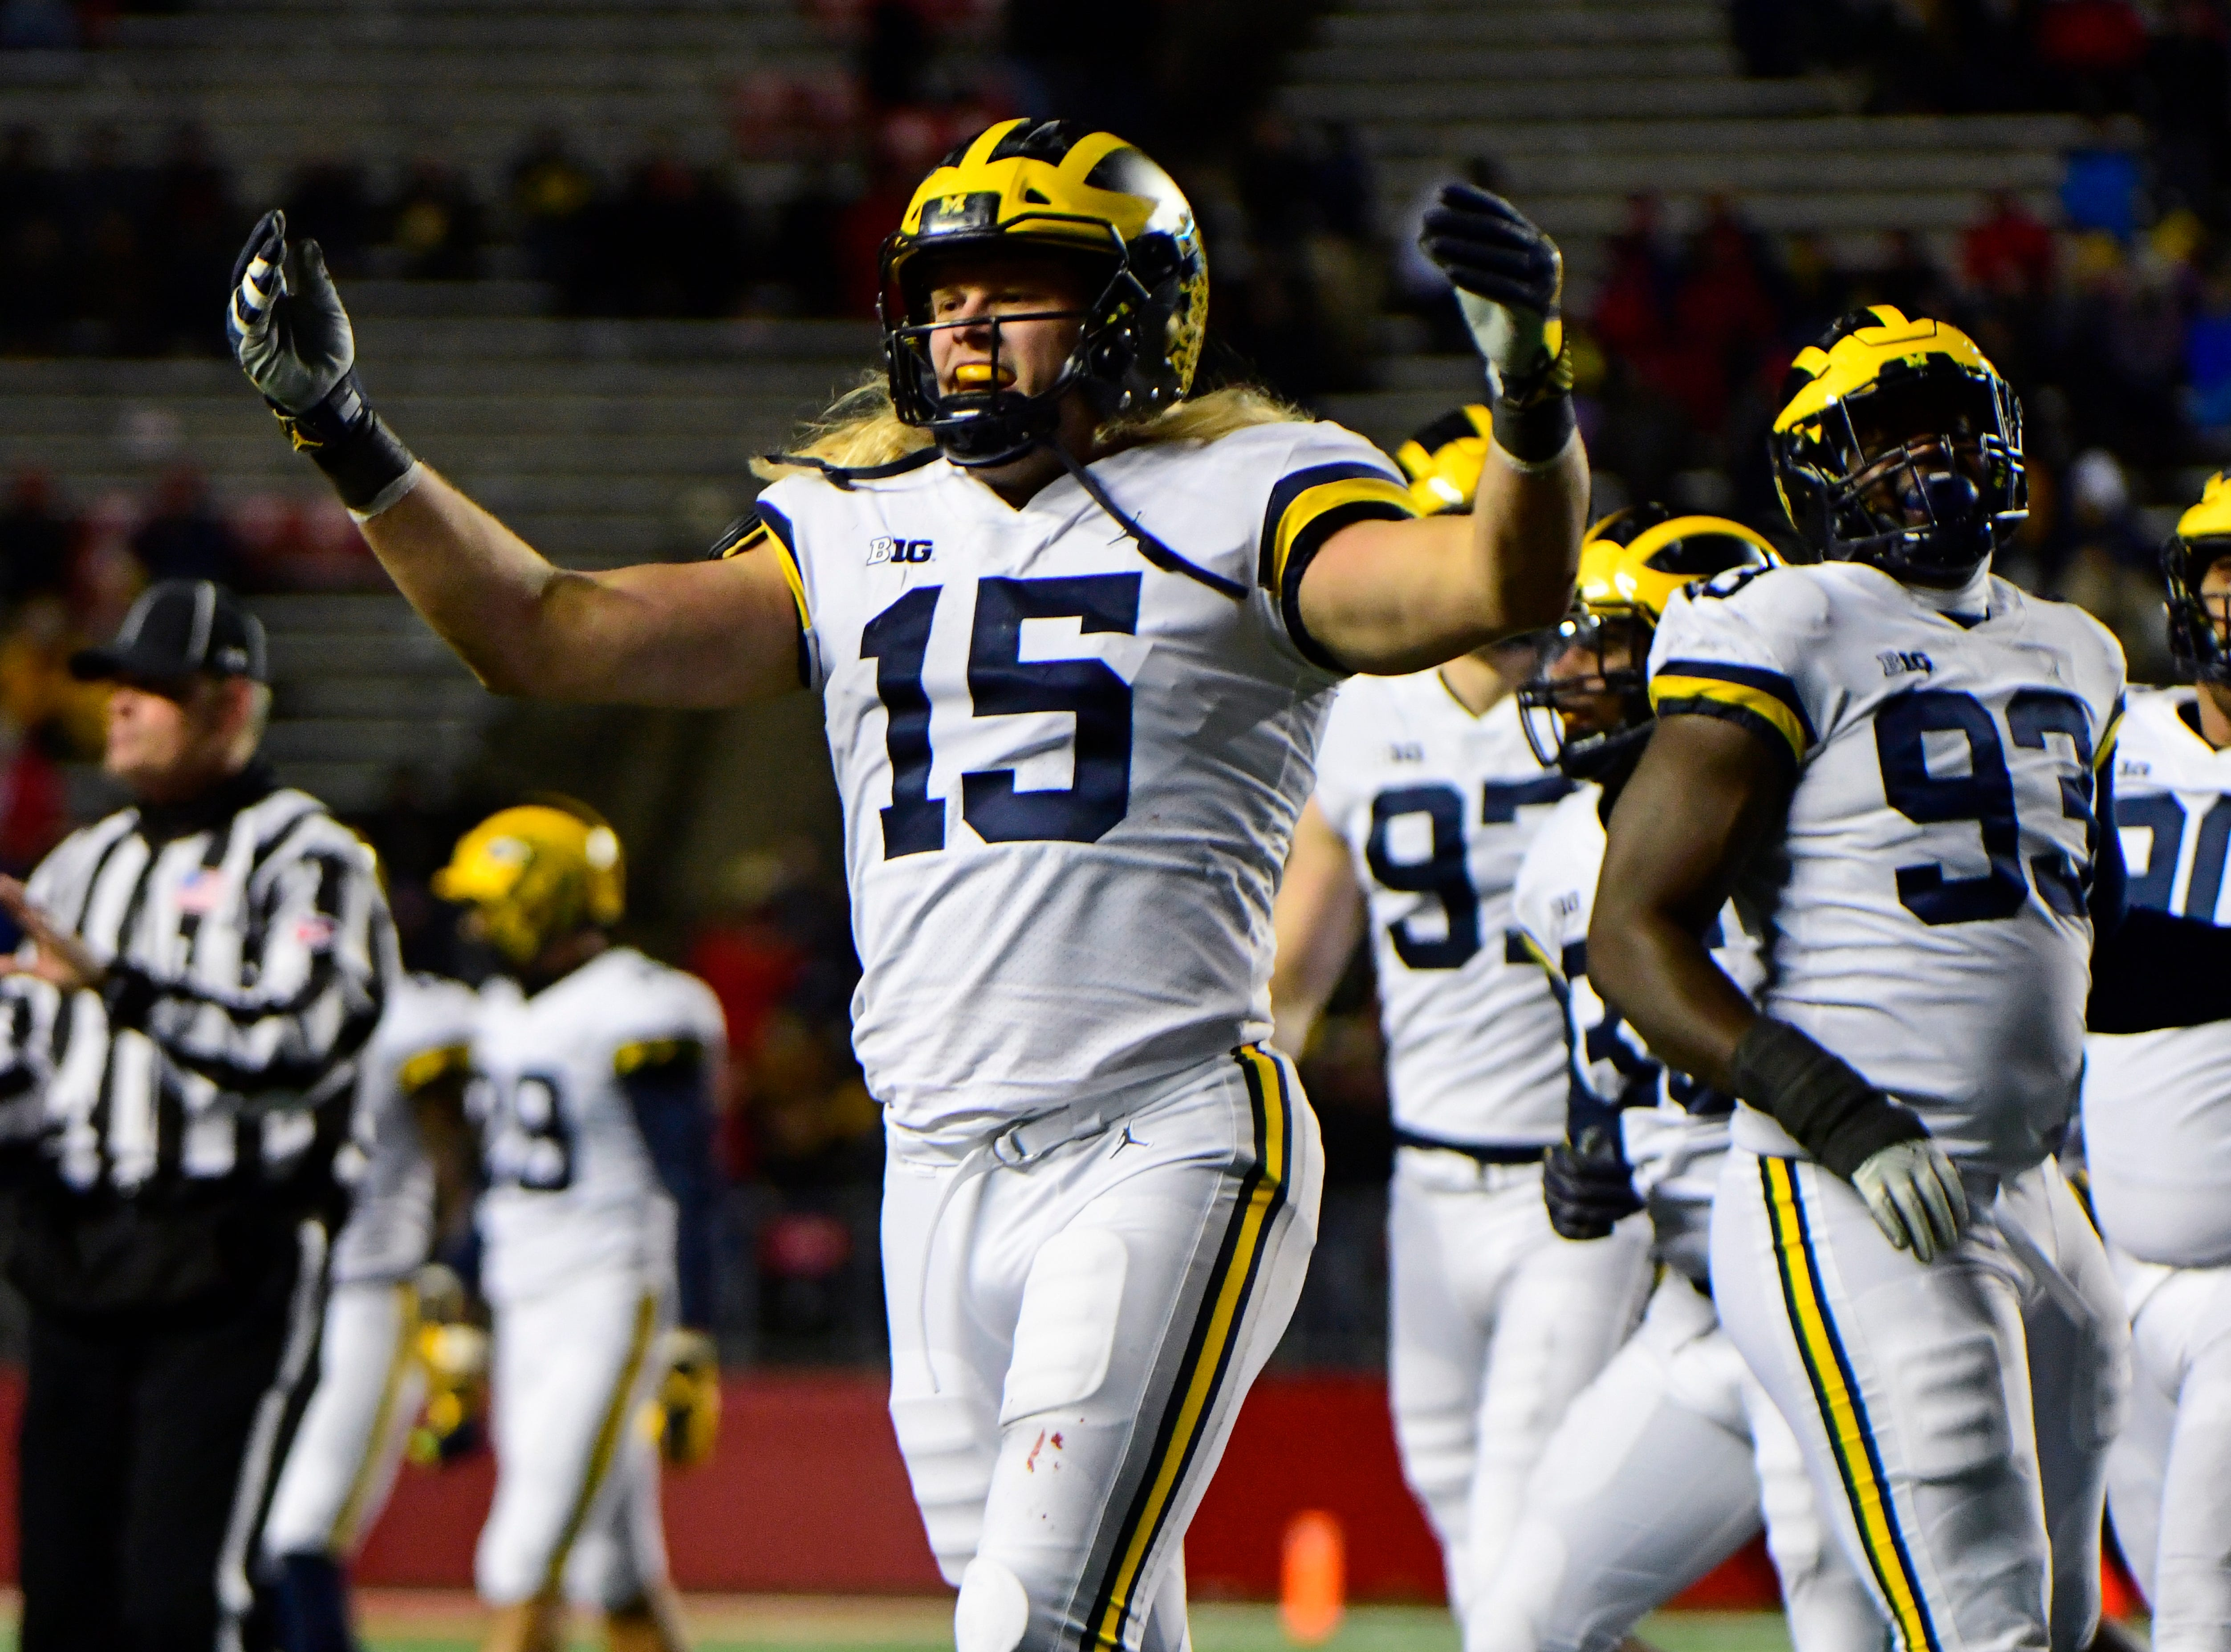 Chase Winovich pumps up the Michigan fans in the crowd.